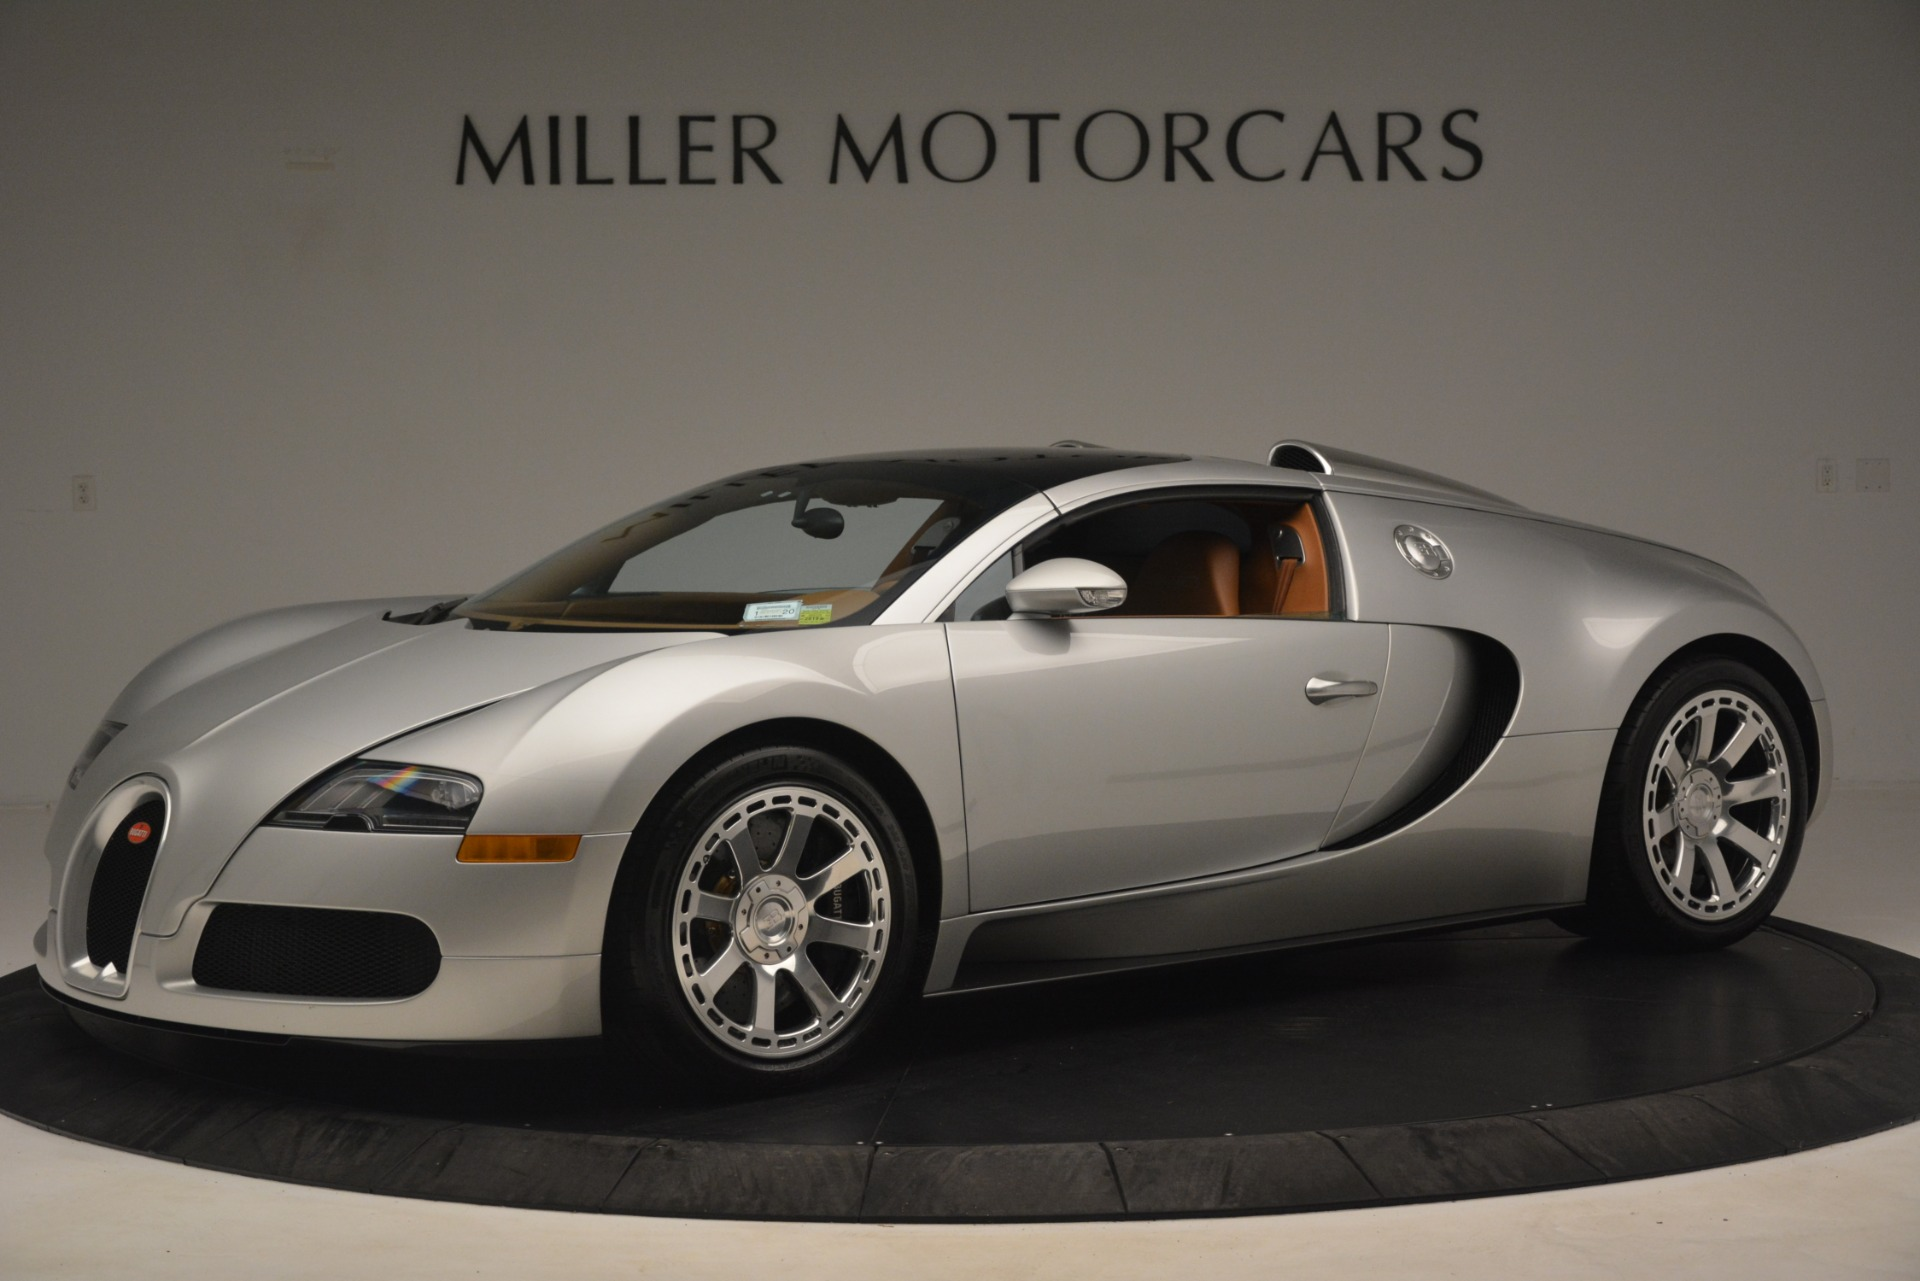 Used 2010 Bugatti Veyron 16.4 Grand Sport For Sale In Greenwich, CT. Alfa Romeo of Greenwich, G149 3159_p13